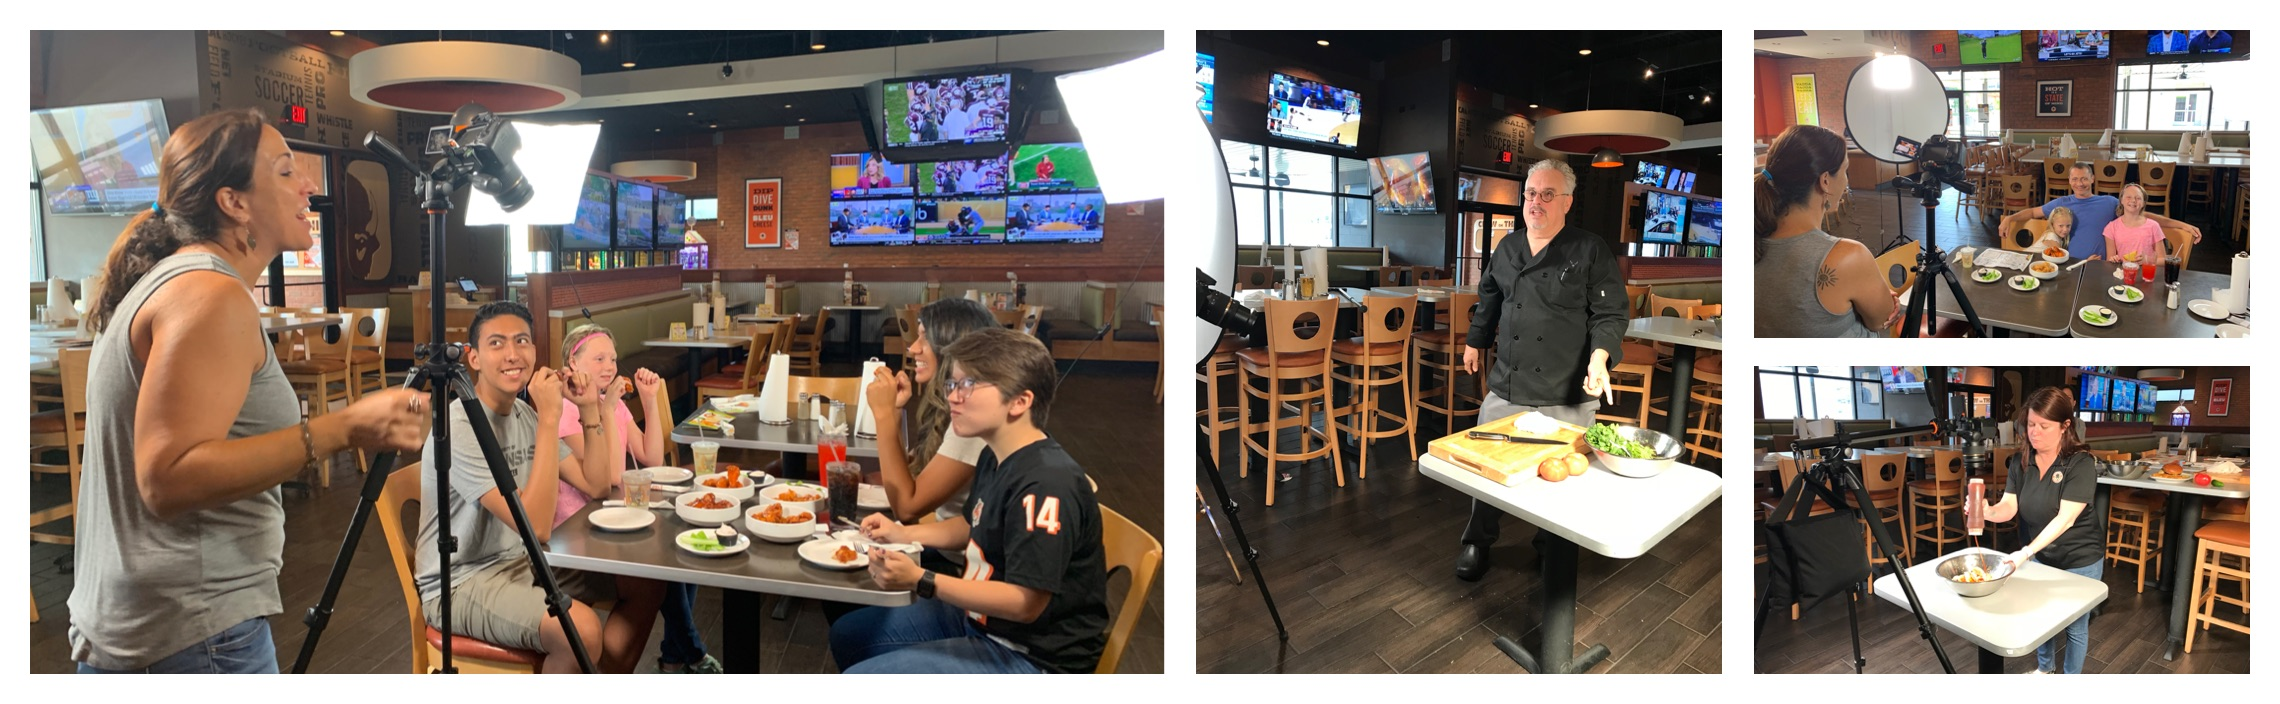 Buffalo Wings & Rings - Photo & Video Shoot